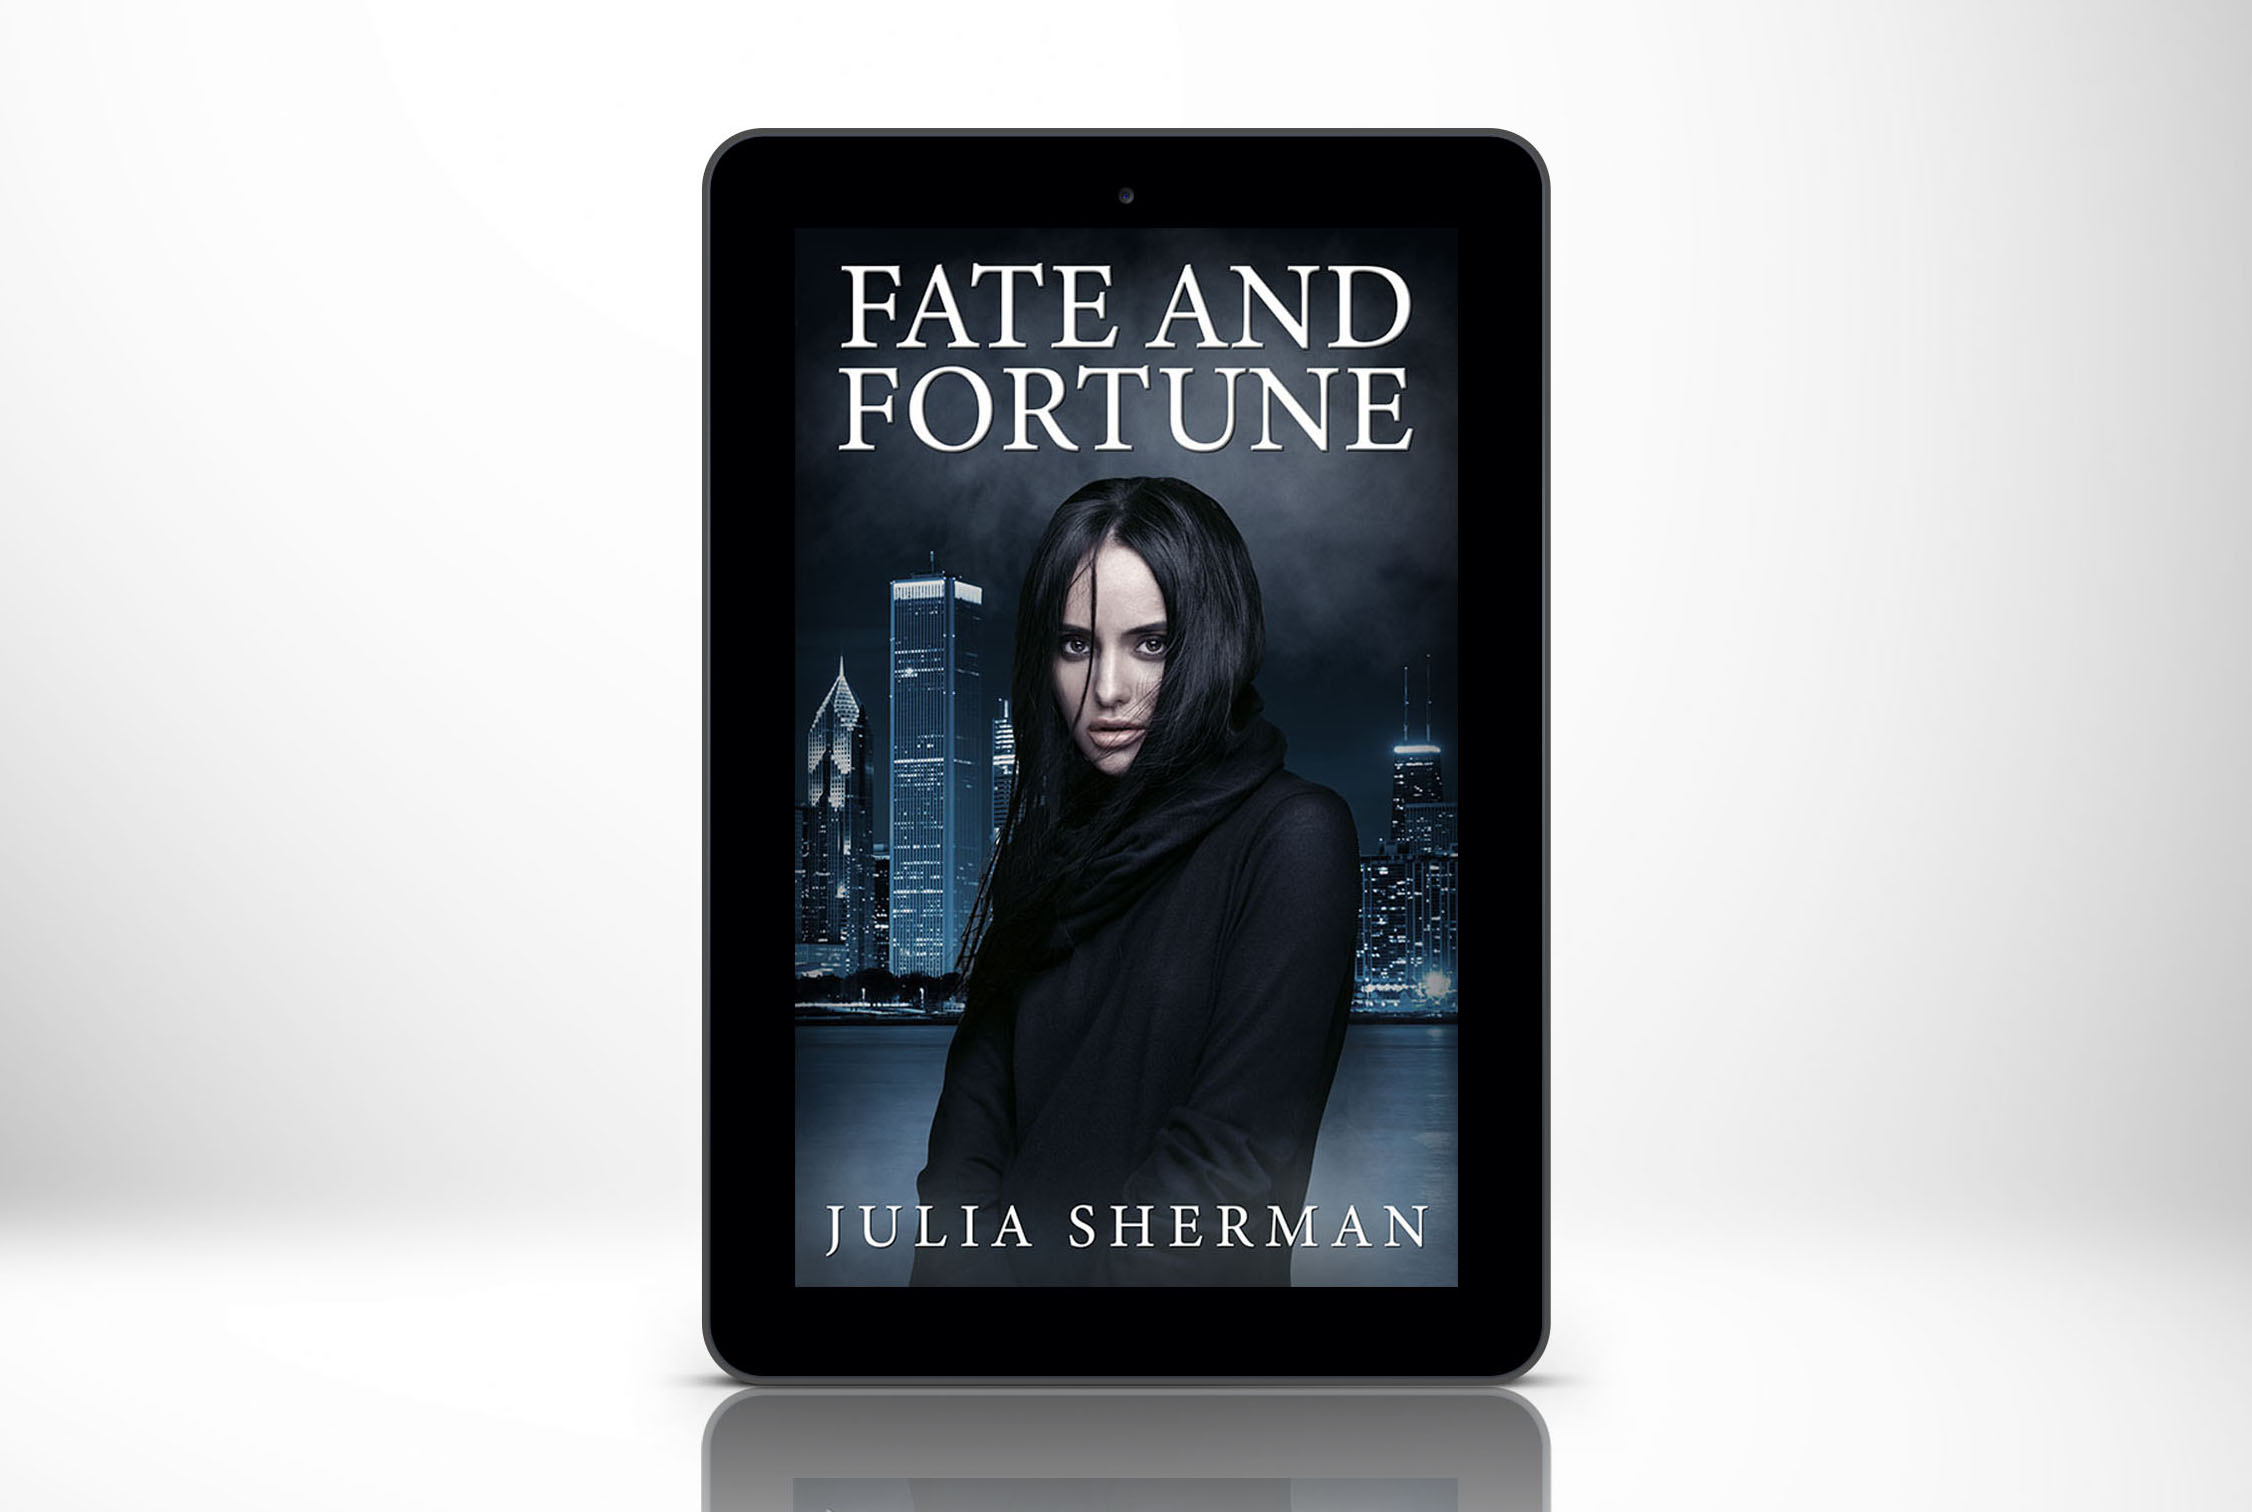 eBook Cover Design - Fate and Fortune is a novel about a mysterious woman who begins impacting the lives of four strangers who were the survivors of a coffee shop shooting.The author wanted to use an image of a mysterious woman with black hair and an image of the Chicago skyline. I selected these images and combined them to create this eBook cover. I formatted the cover art  for the author to easily upload to Amazon's self-publishing service.